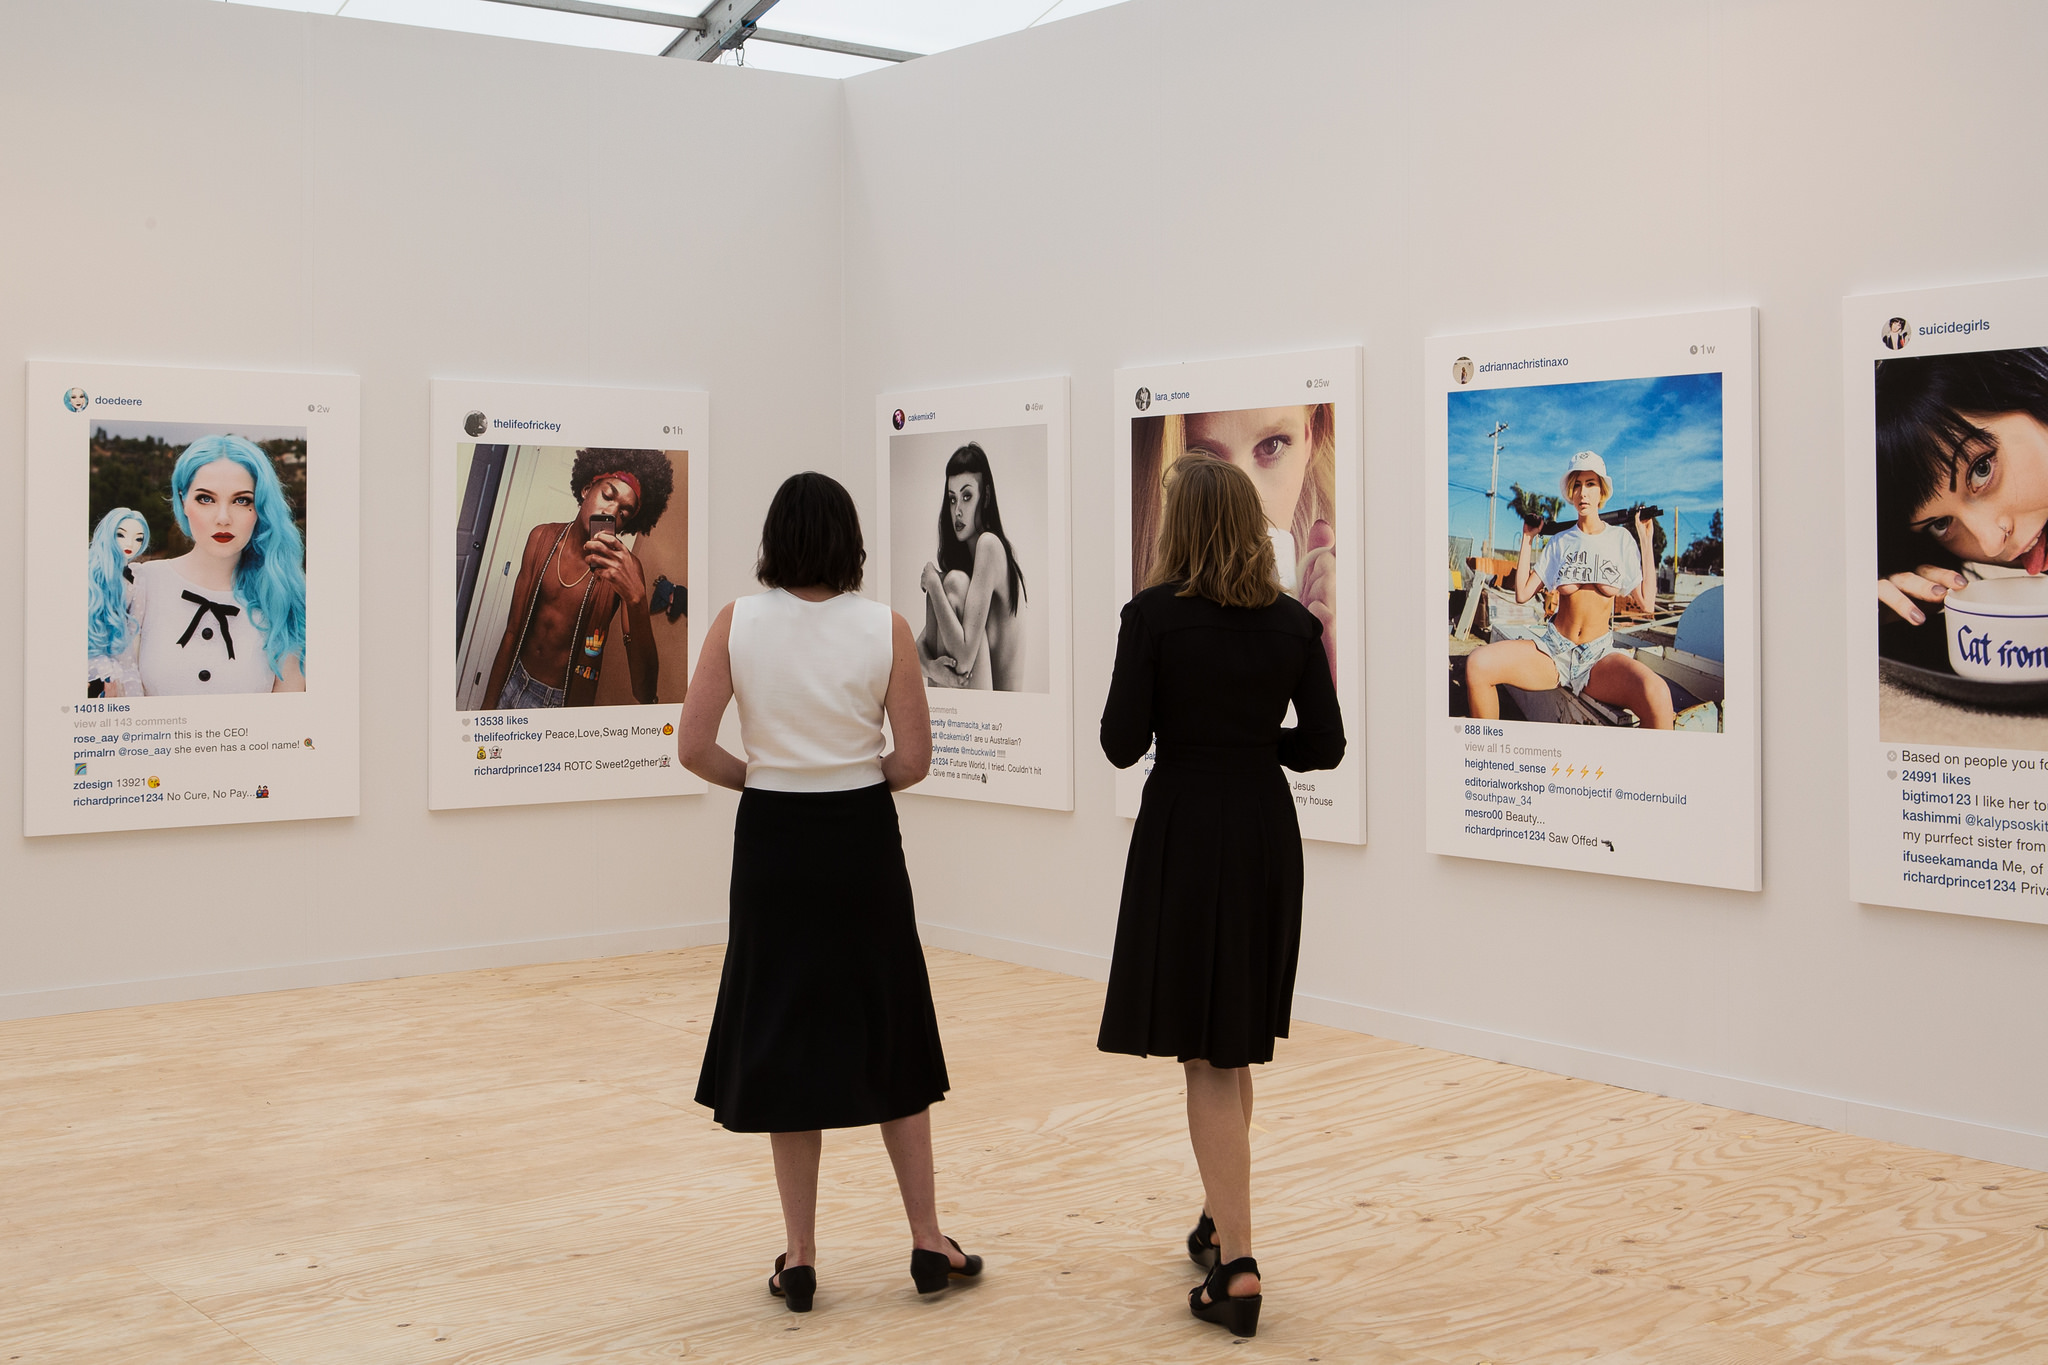 Gagosian, Frieze New York 2015. Photograph by Marco Scozzaro. Courtesy of Marco Scozzaro/Frieze.